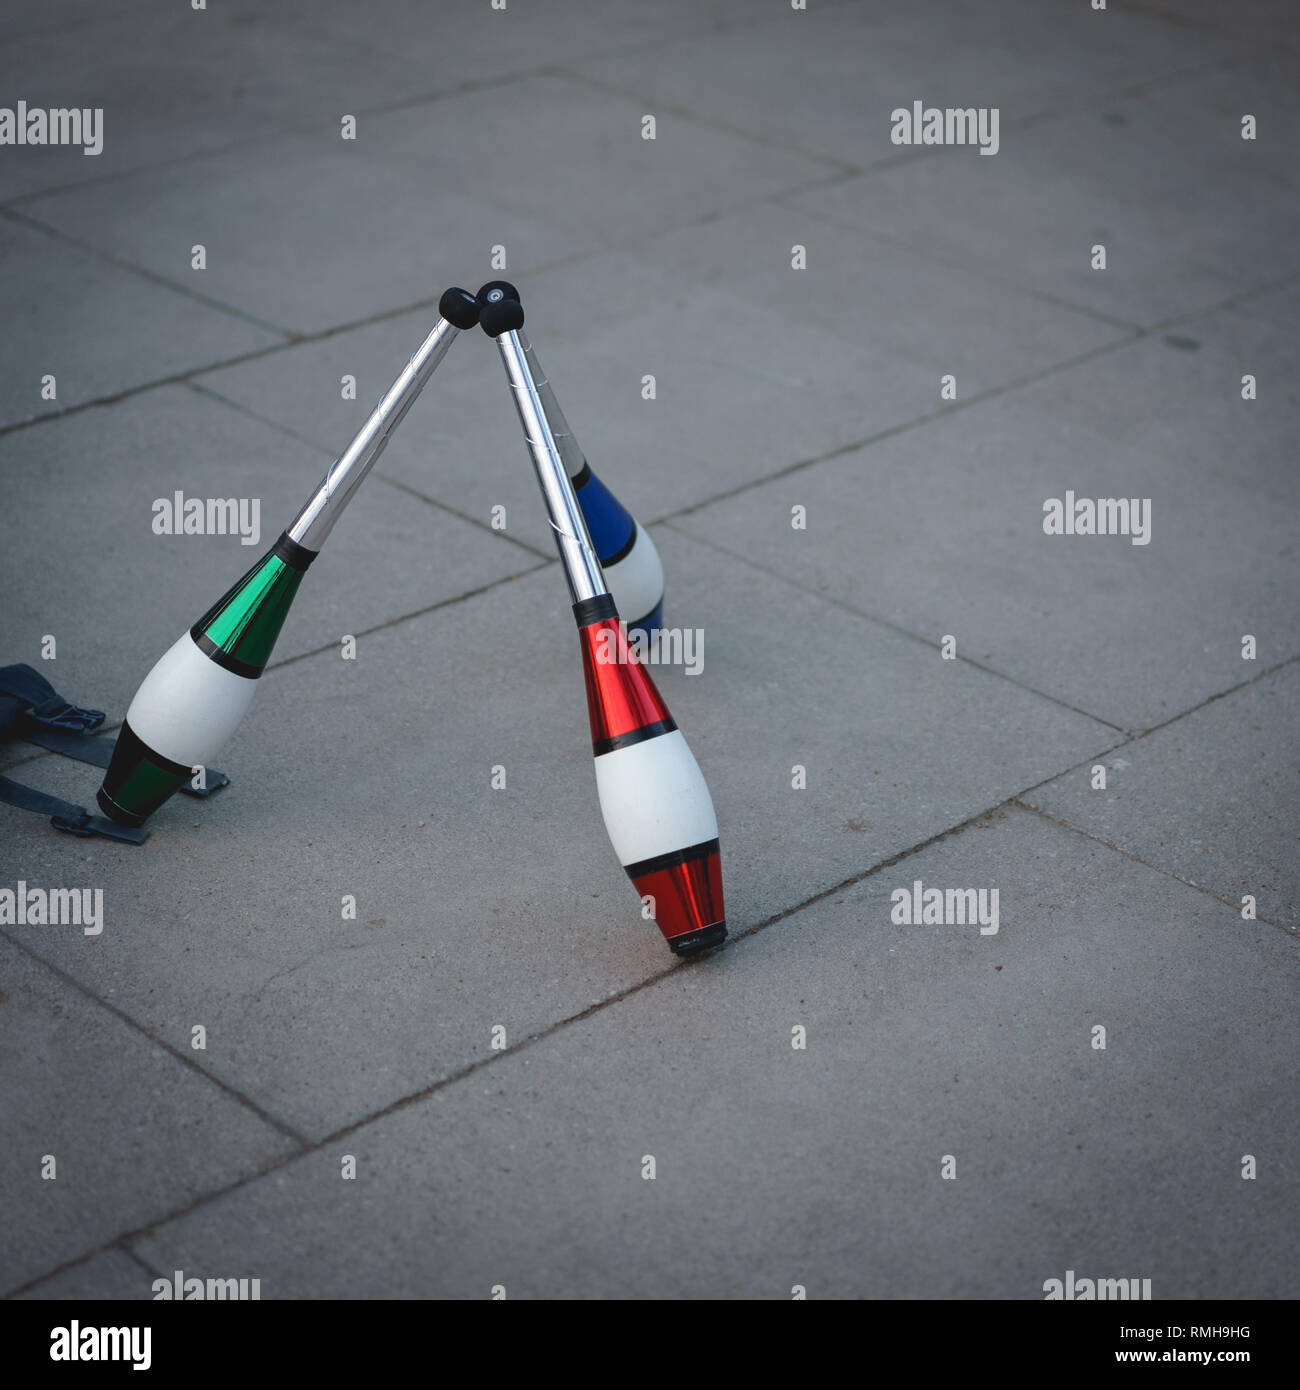 Three red, green and blue juggling clubs on a pavement. Square format. - Stock Image